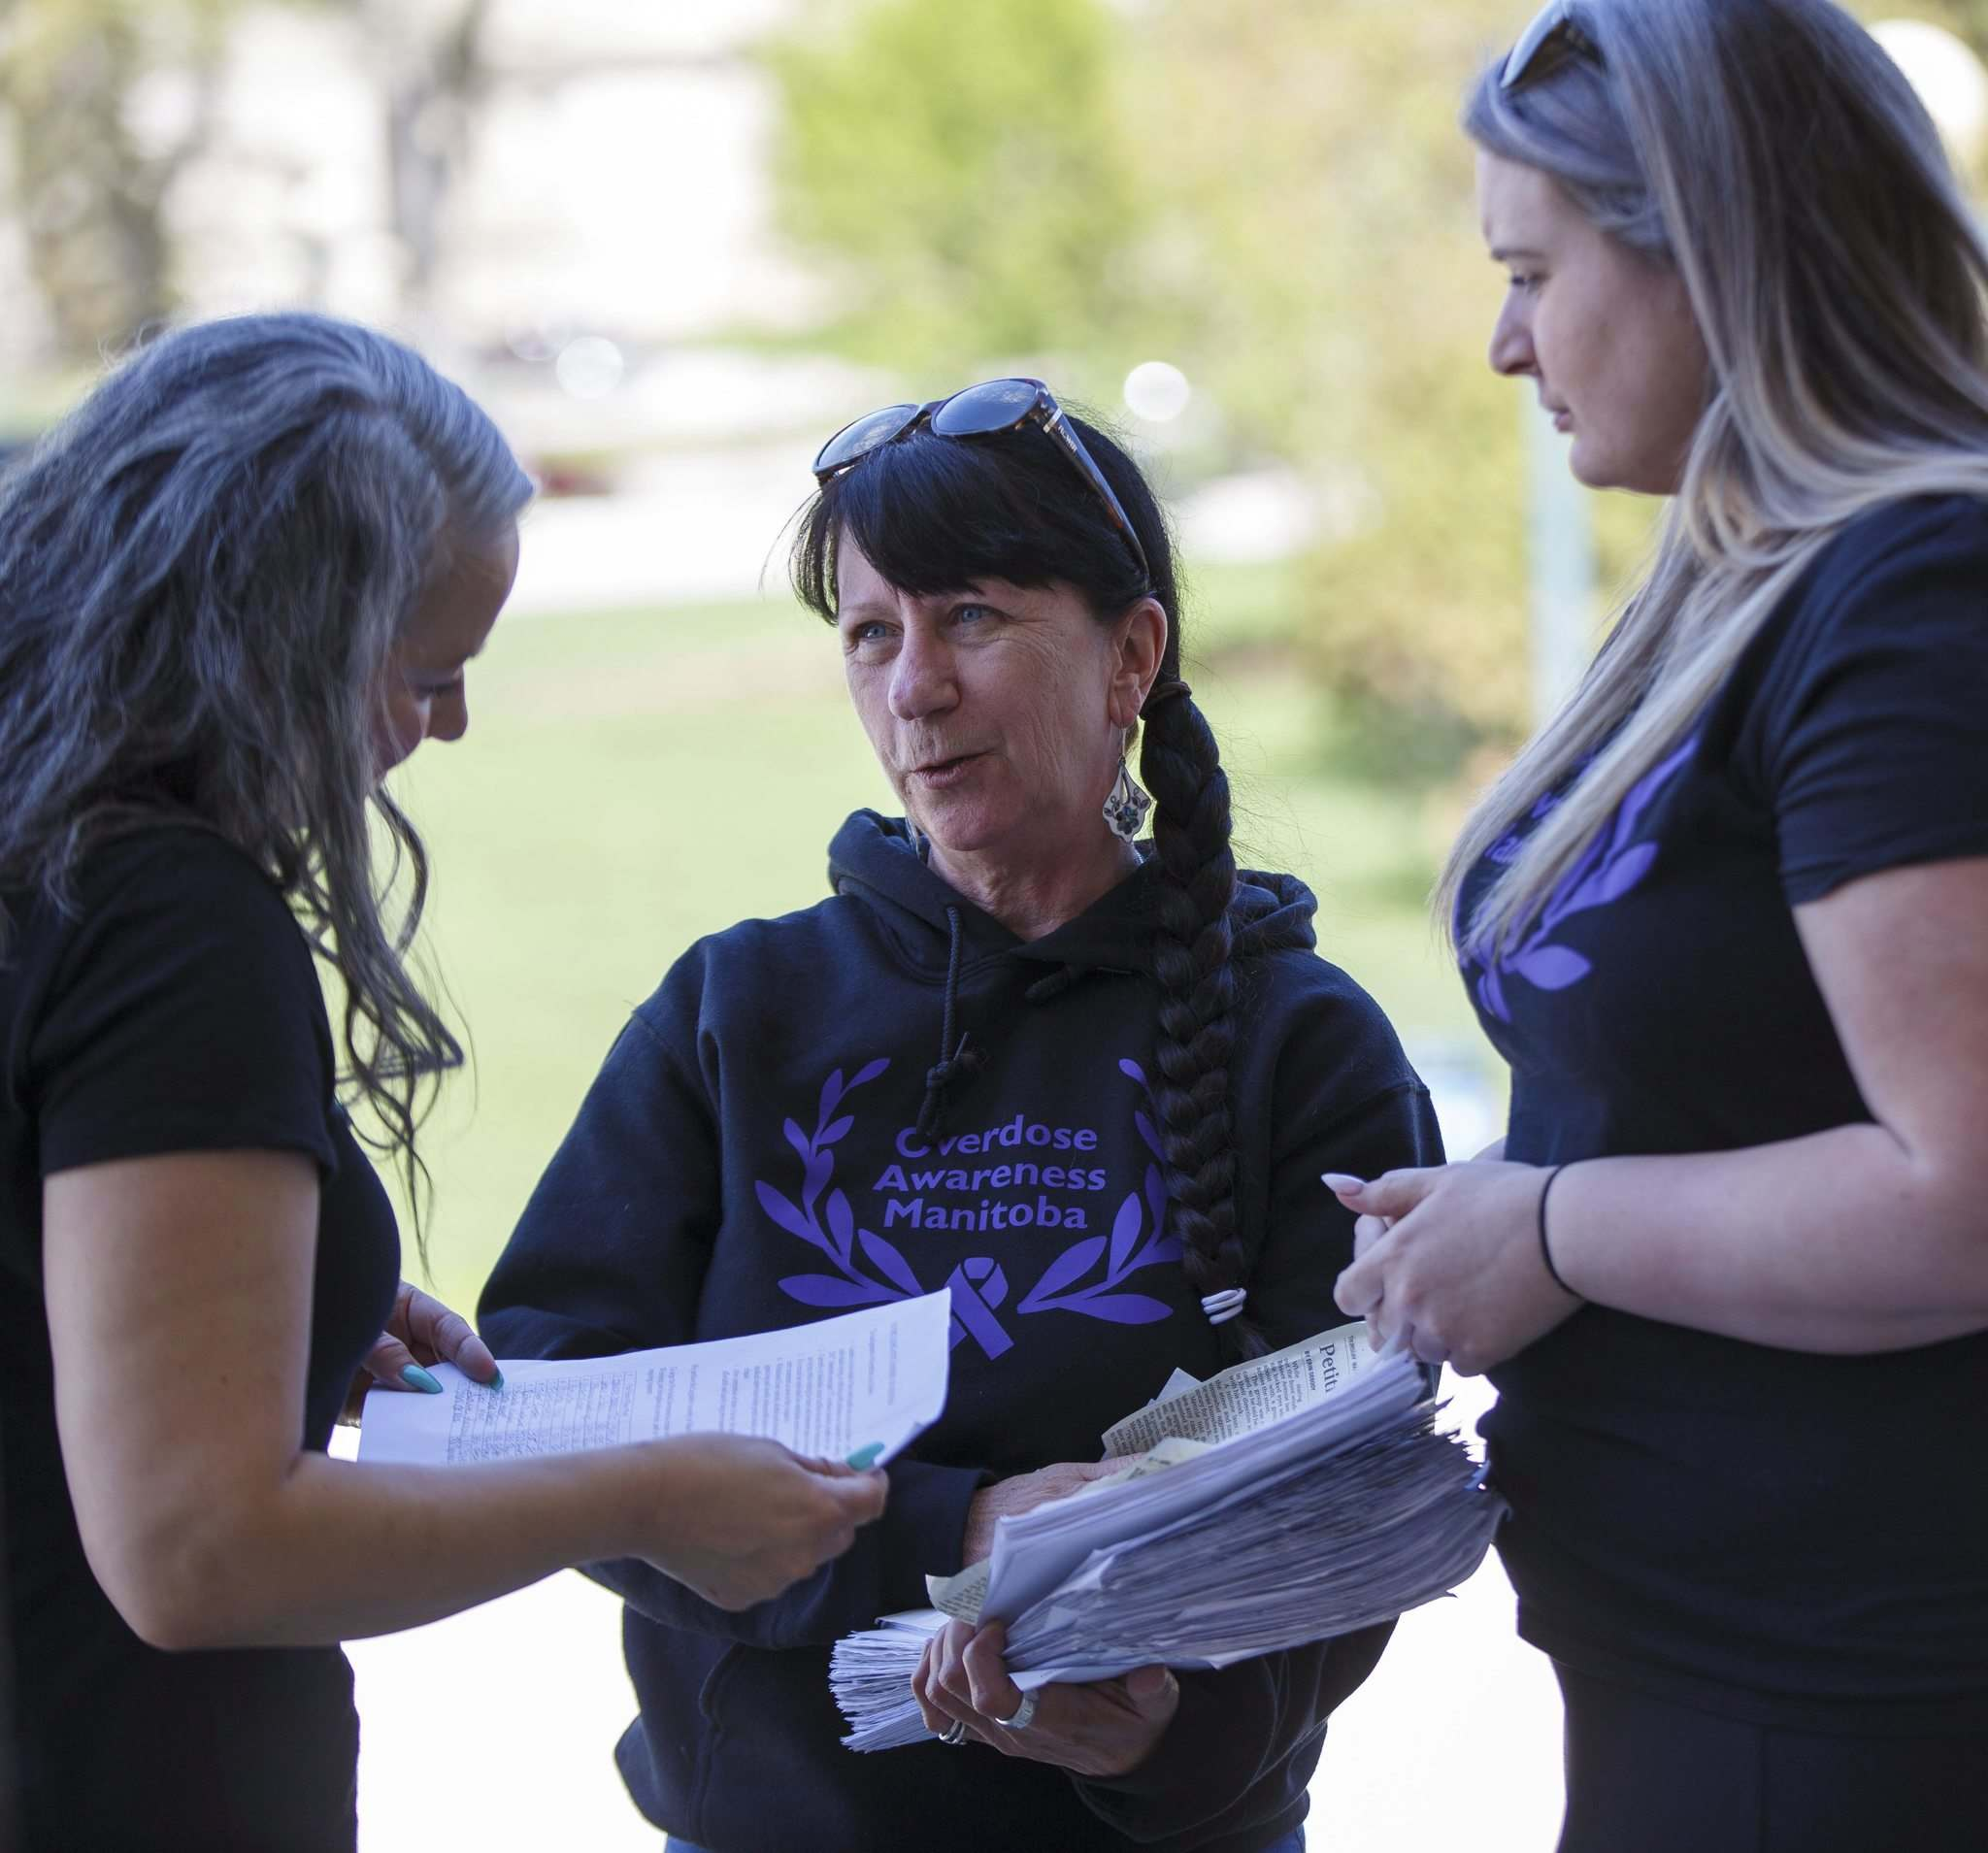 MIKE DEAL / WINNIPEG FREE PRESS</p><p>Arlene Last-Kolb (centre) and Rebecca Rummery, co-founder of Overdose Manitoba, discuss Last-Kolb's petition with NDP MLA Nahanni Fontaine.